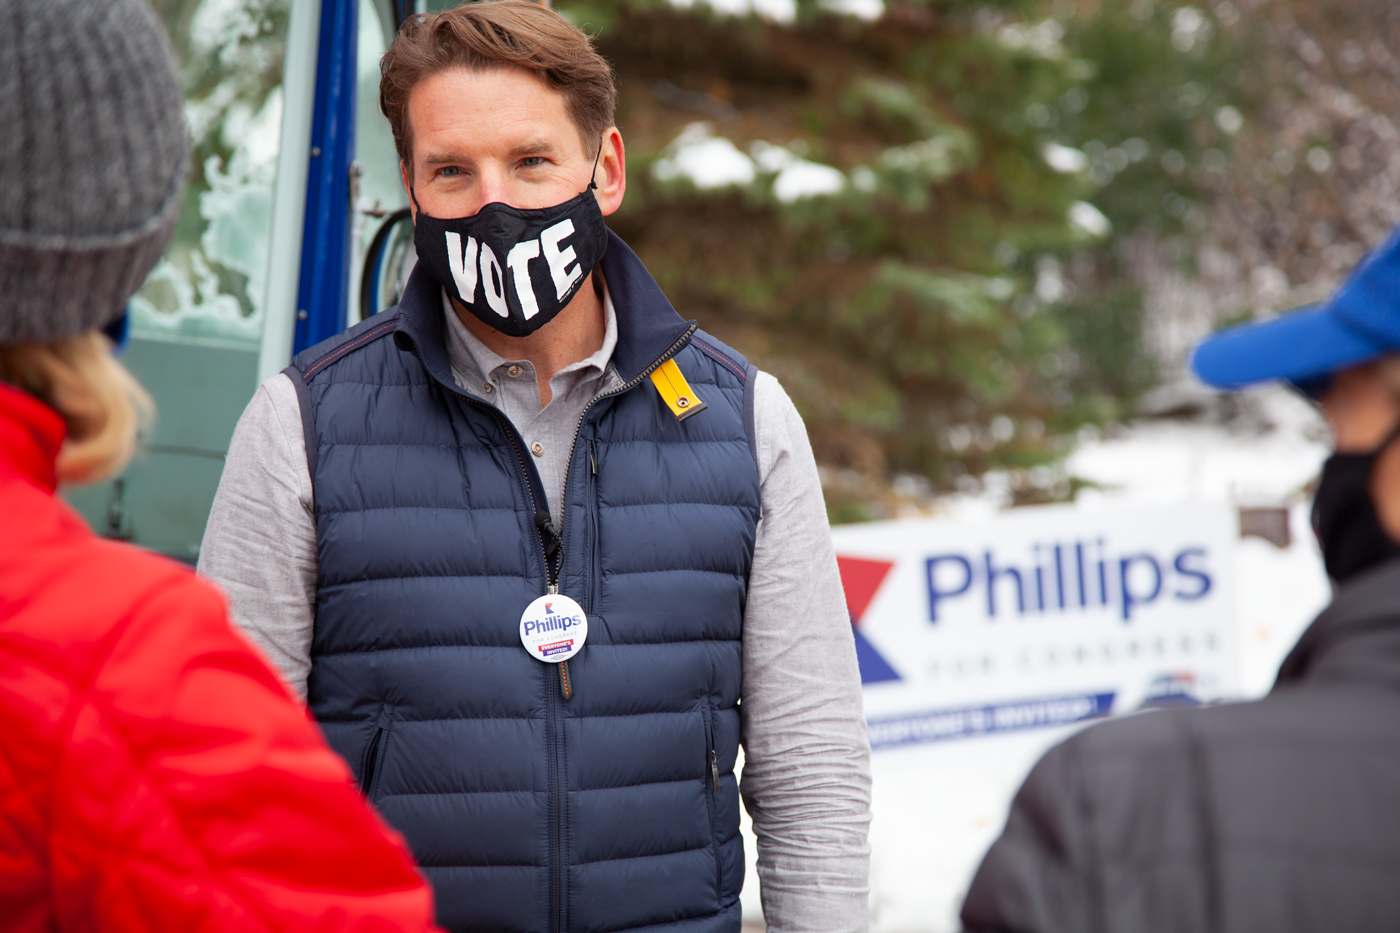 Dean Phillips wearing a VOTE mask